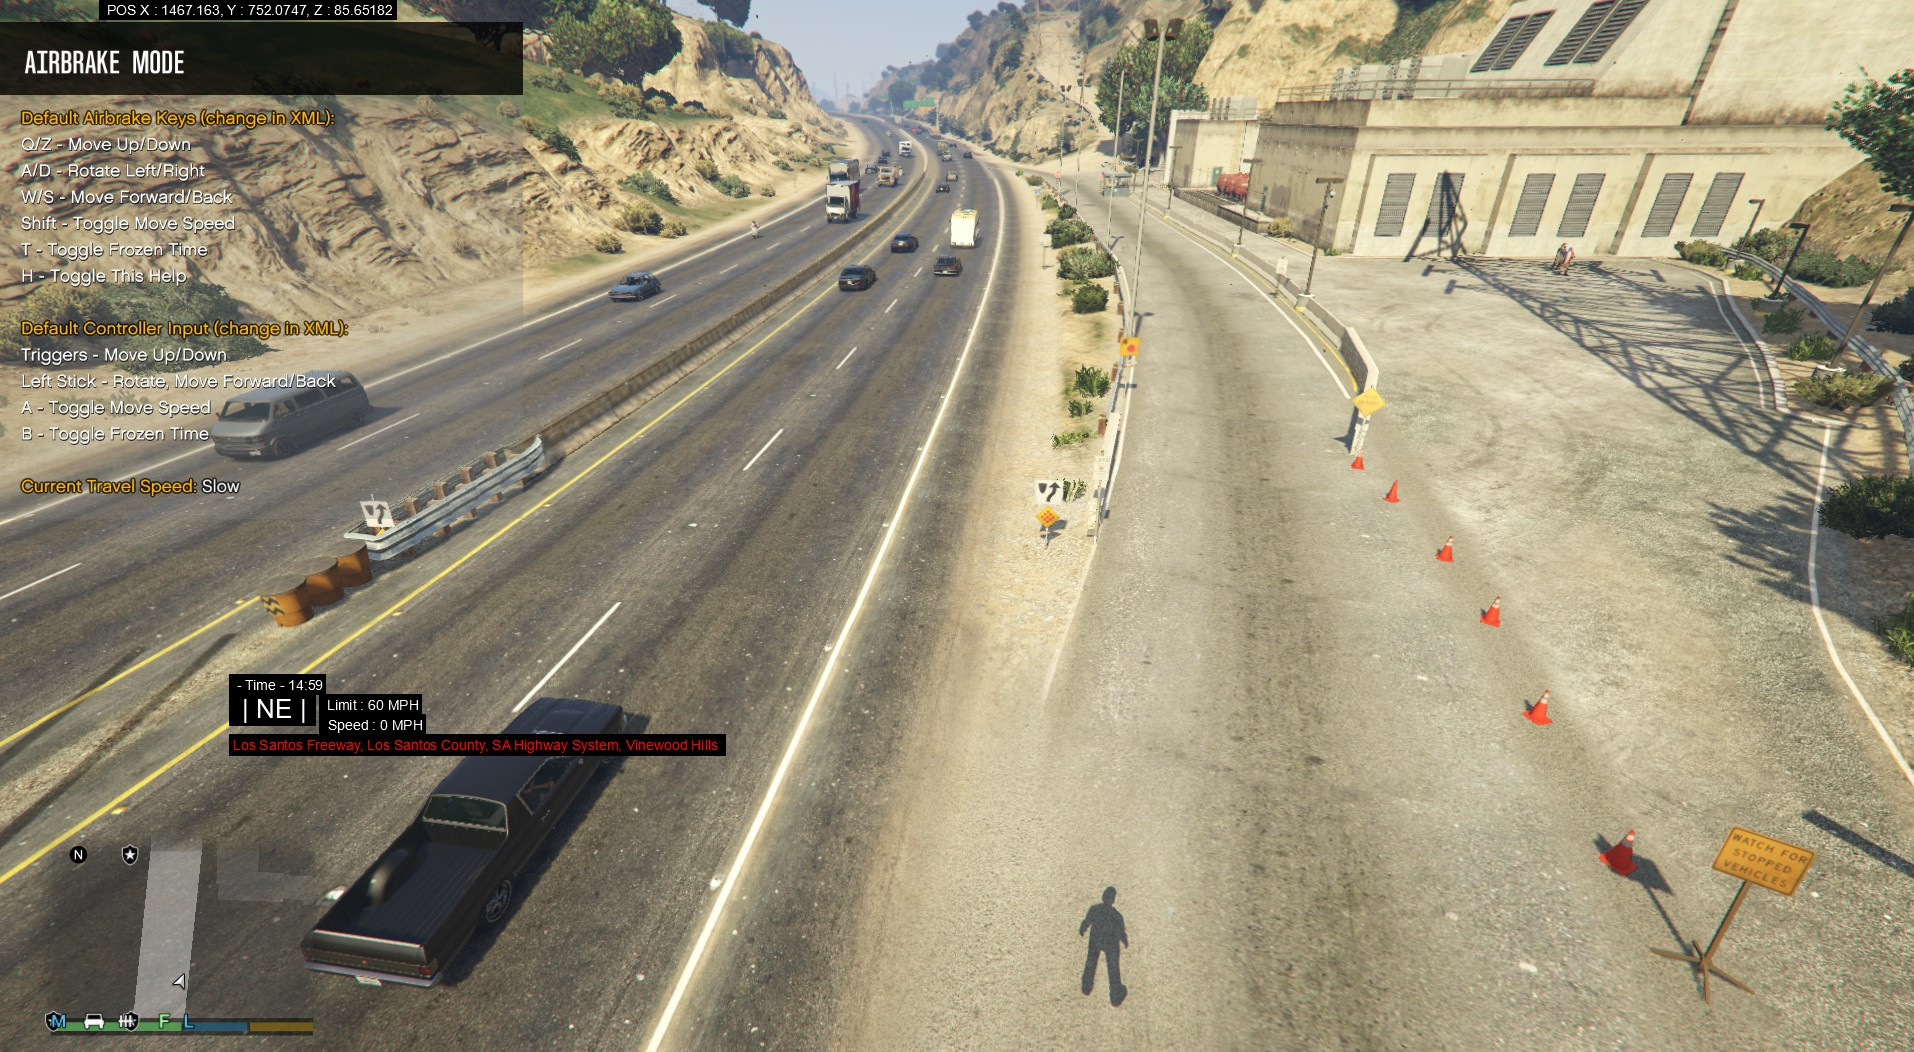 Gta 5 patch download